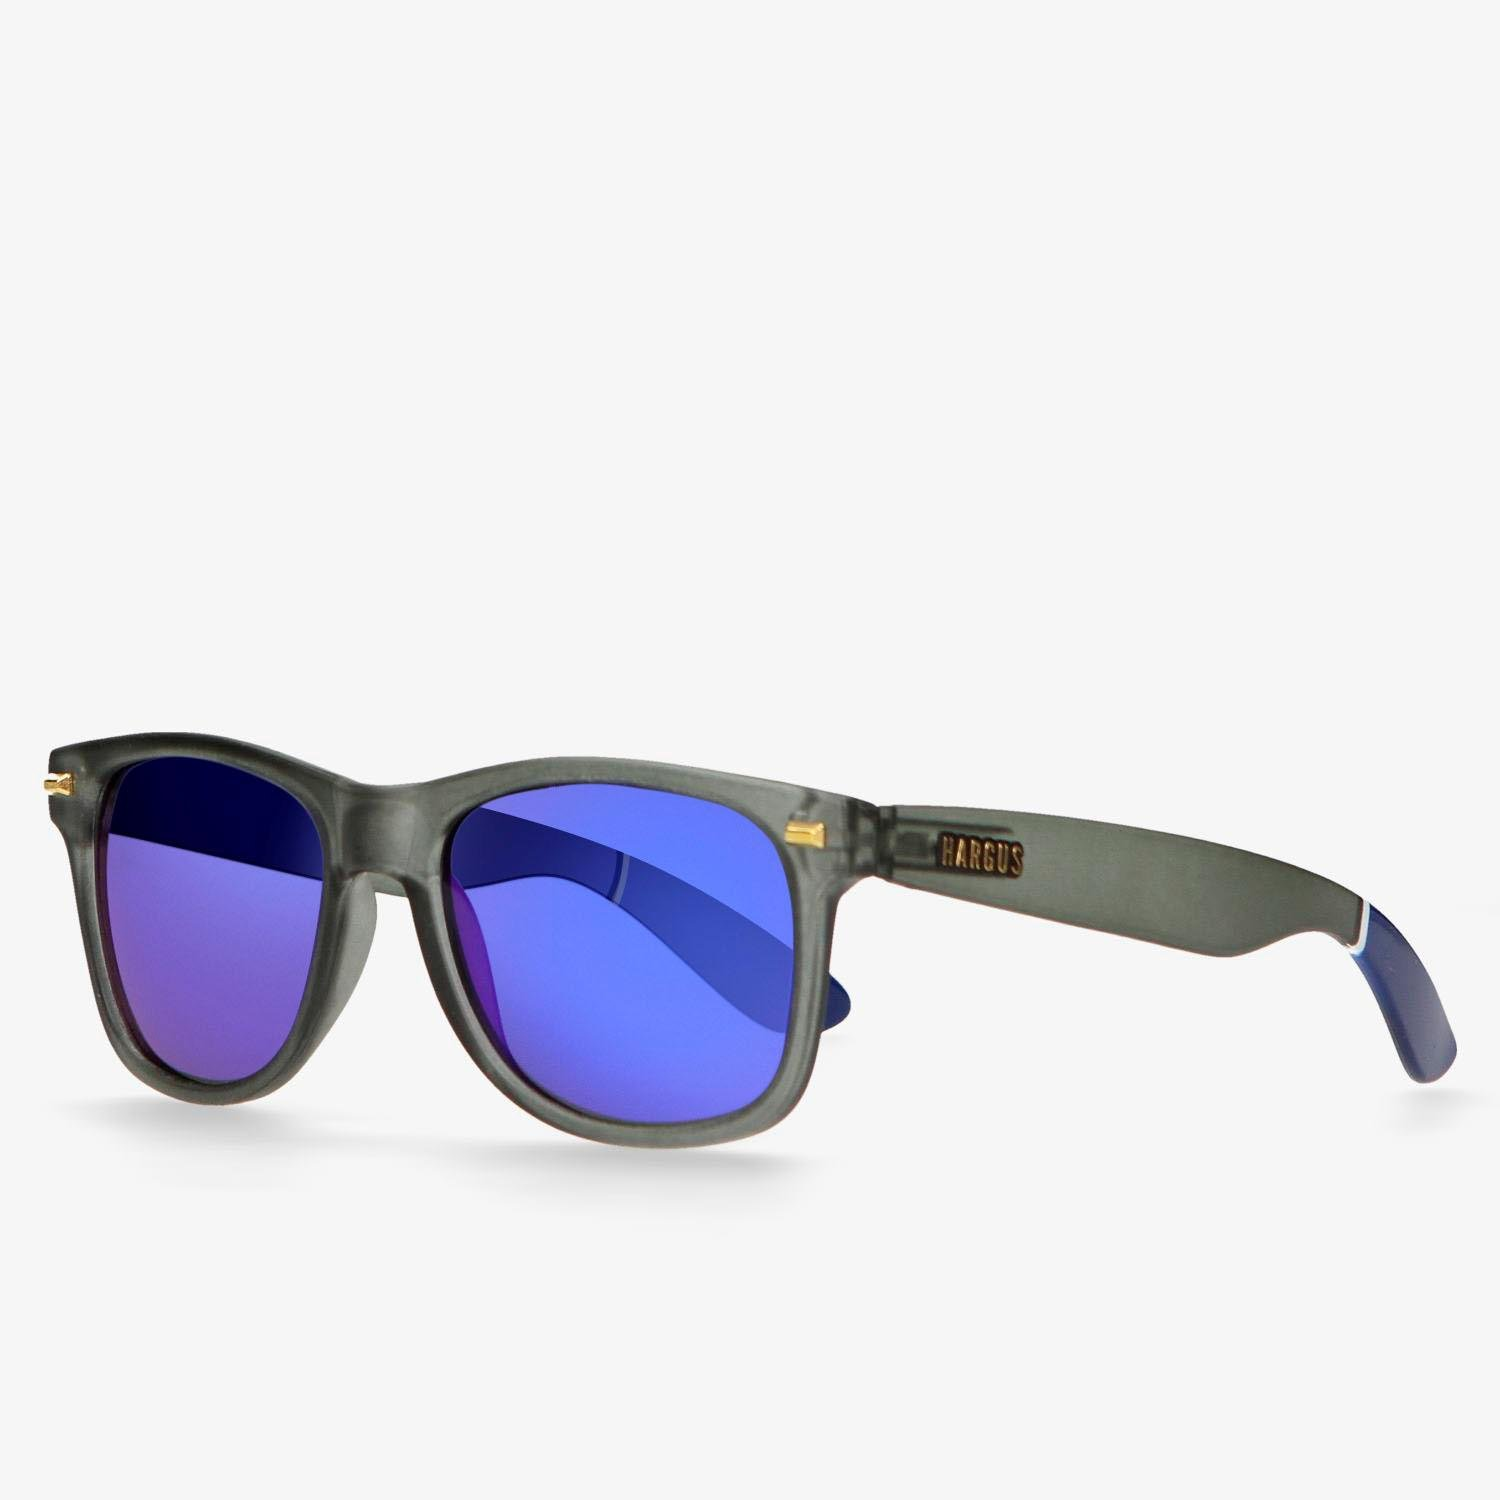 3b2ac0375 uAmazon esDeportes Grises Y Gafas HargustallaT Aire Libre Sol 0OnPkw8